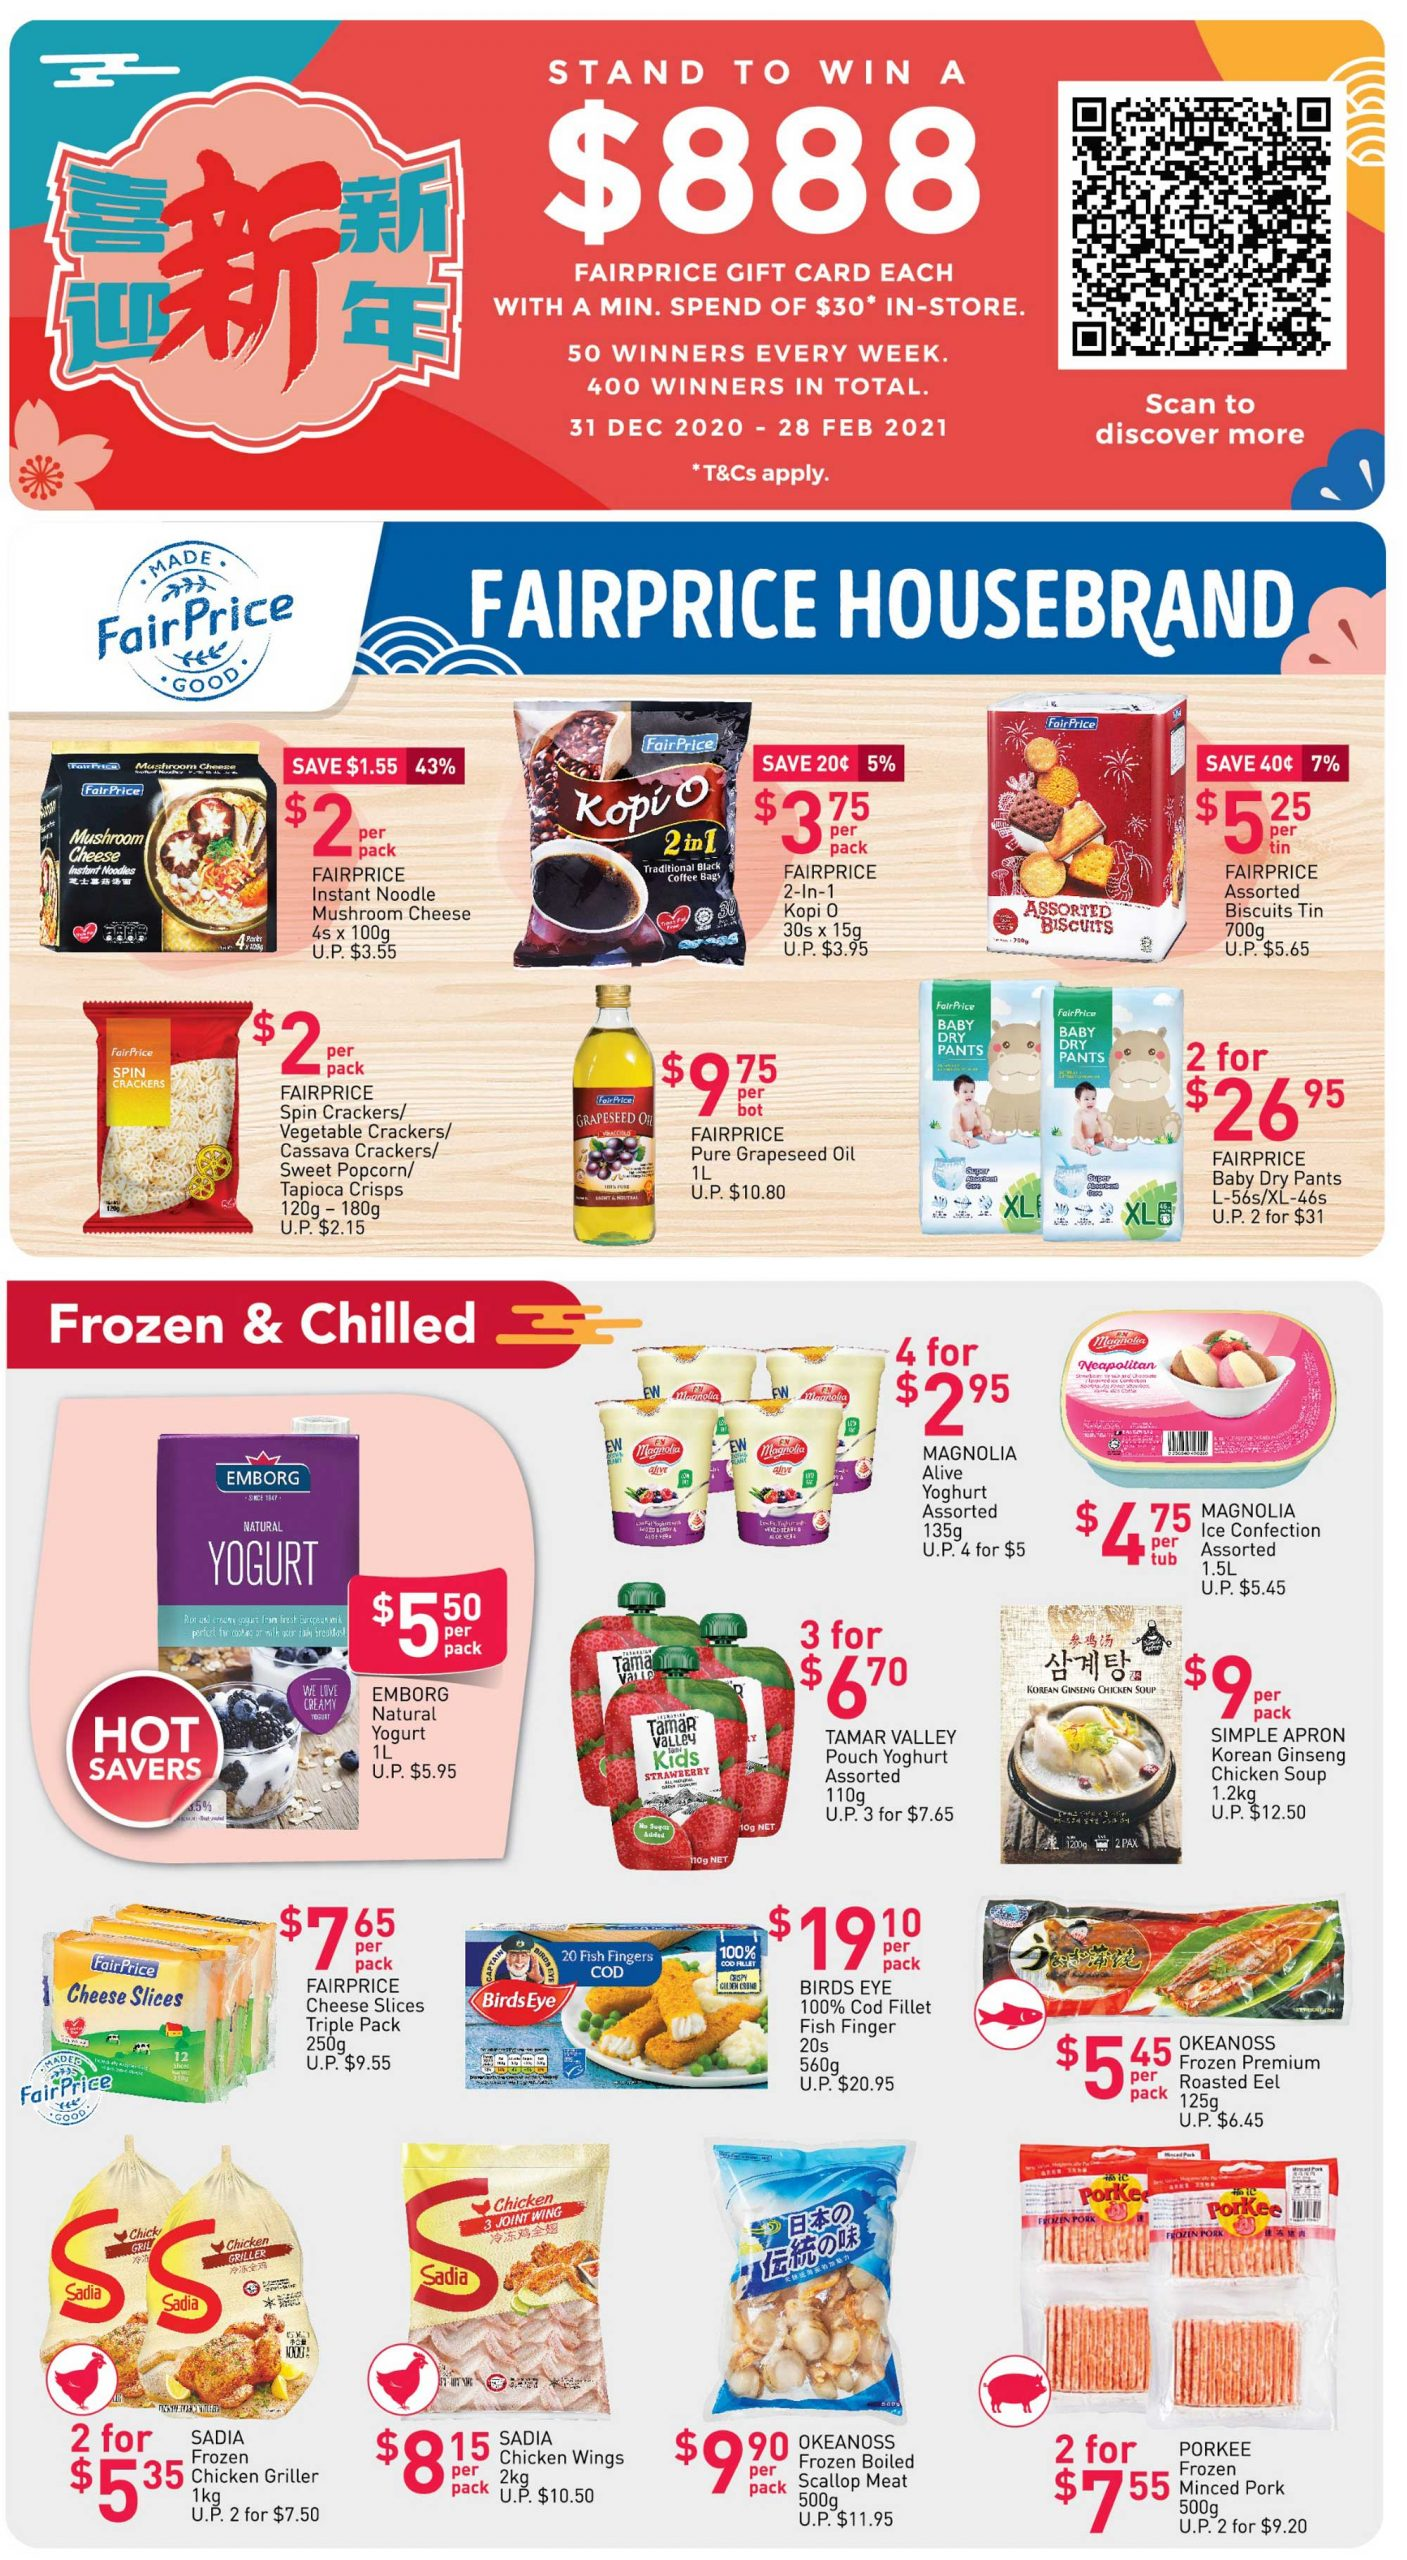 FairPrice's weekly saver deals till 6 January 2021